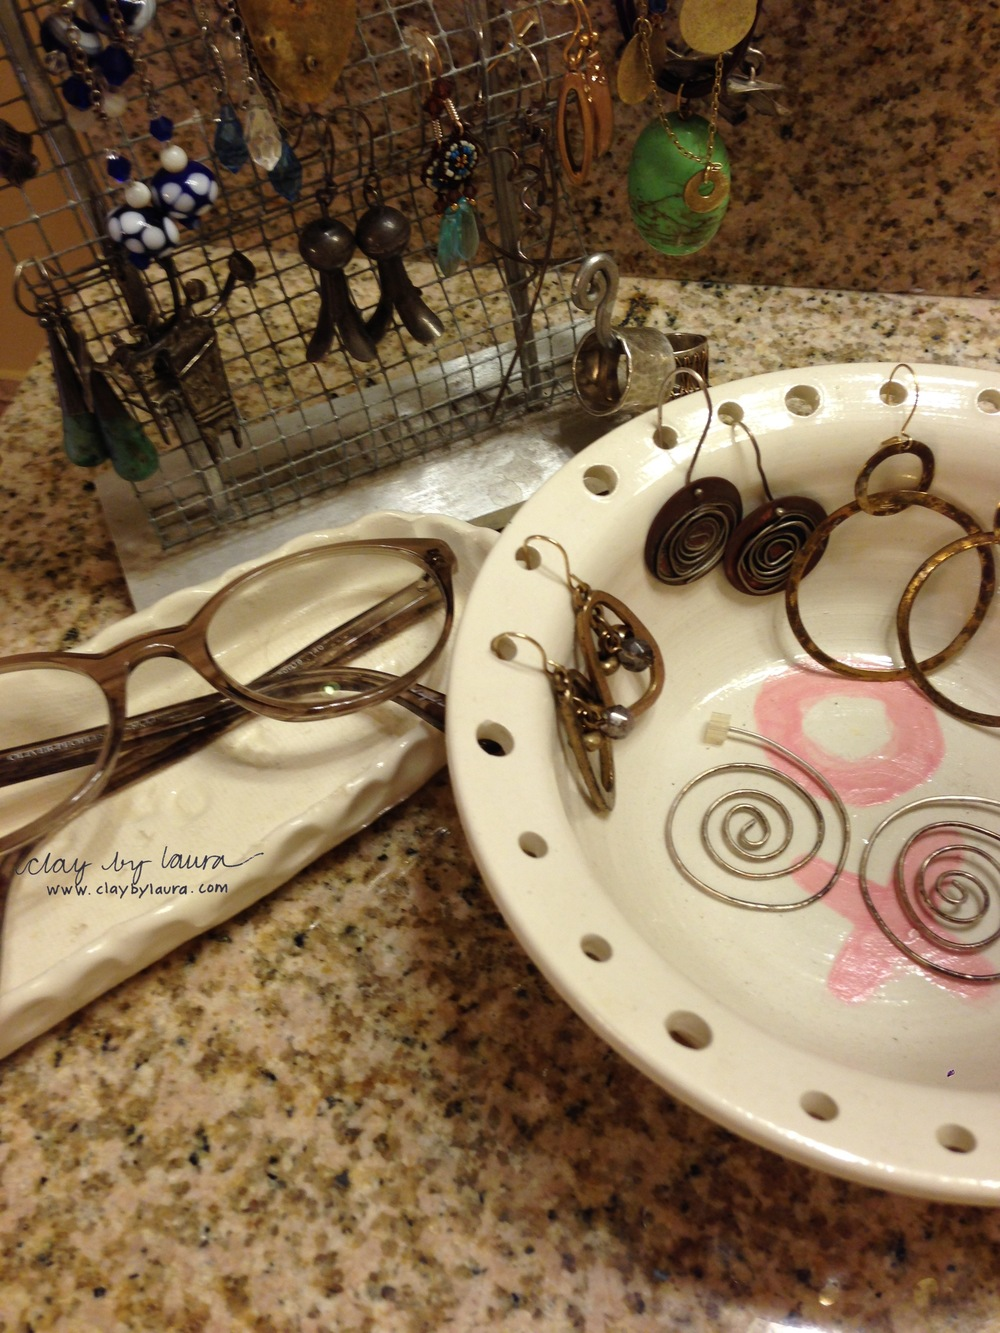 By using a bowl on my bathroom counter, I can easily see my earring collection.